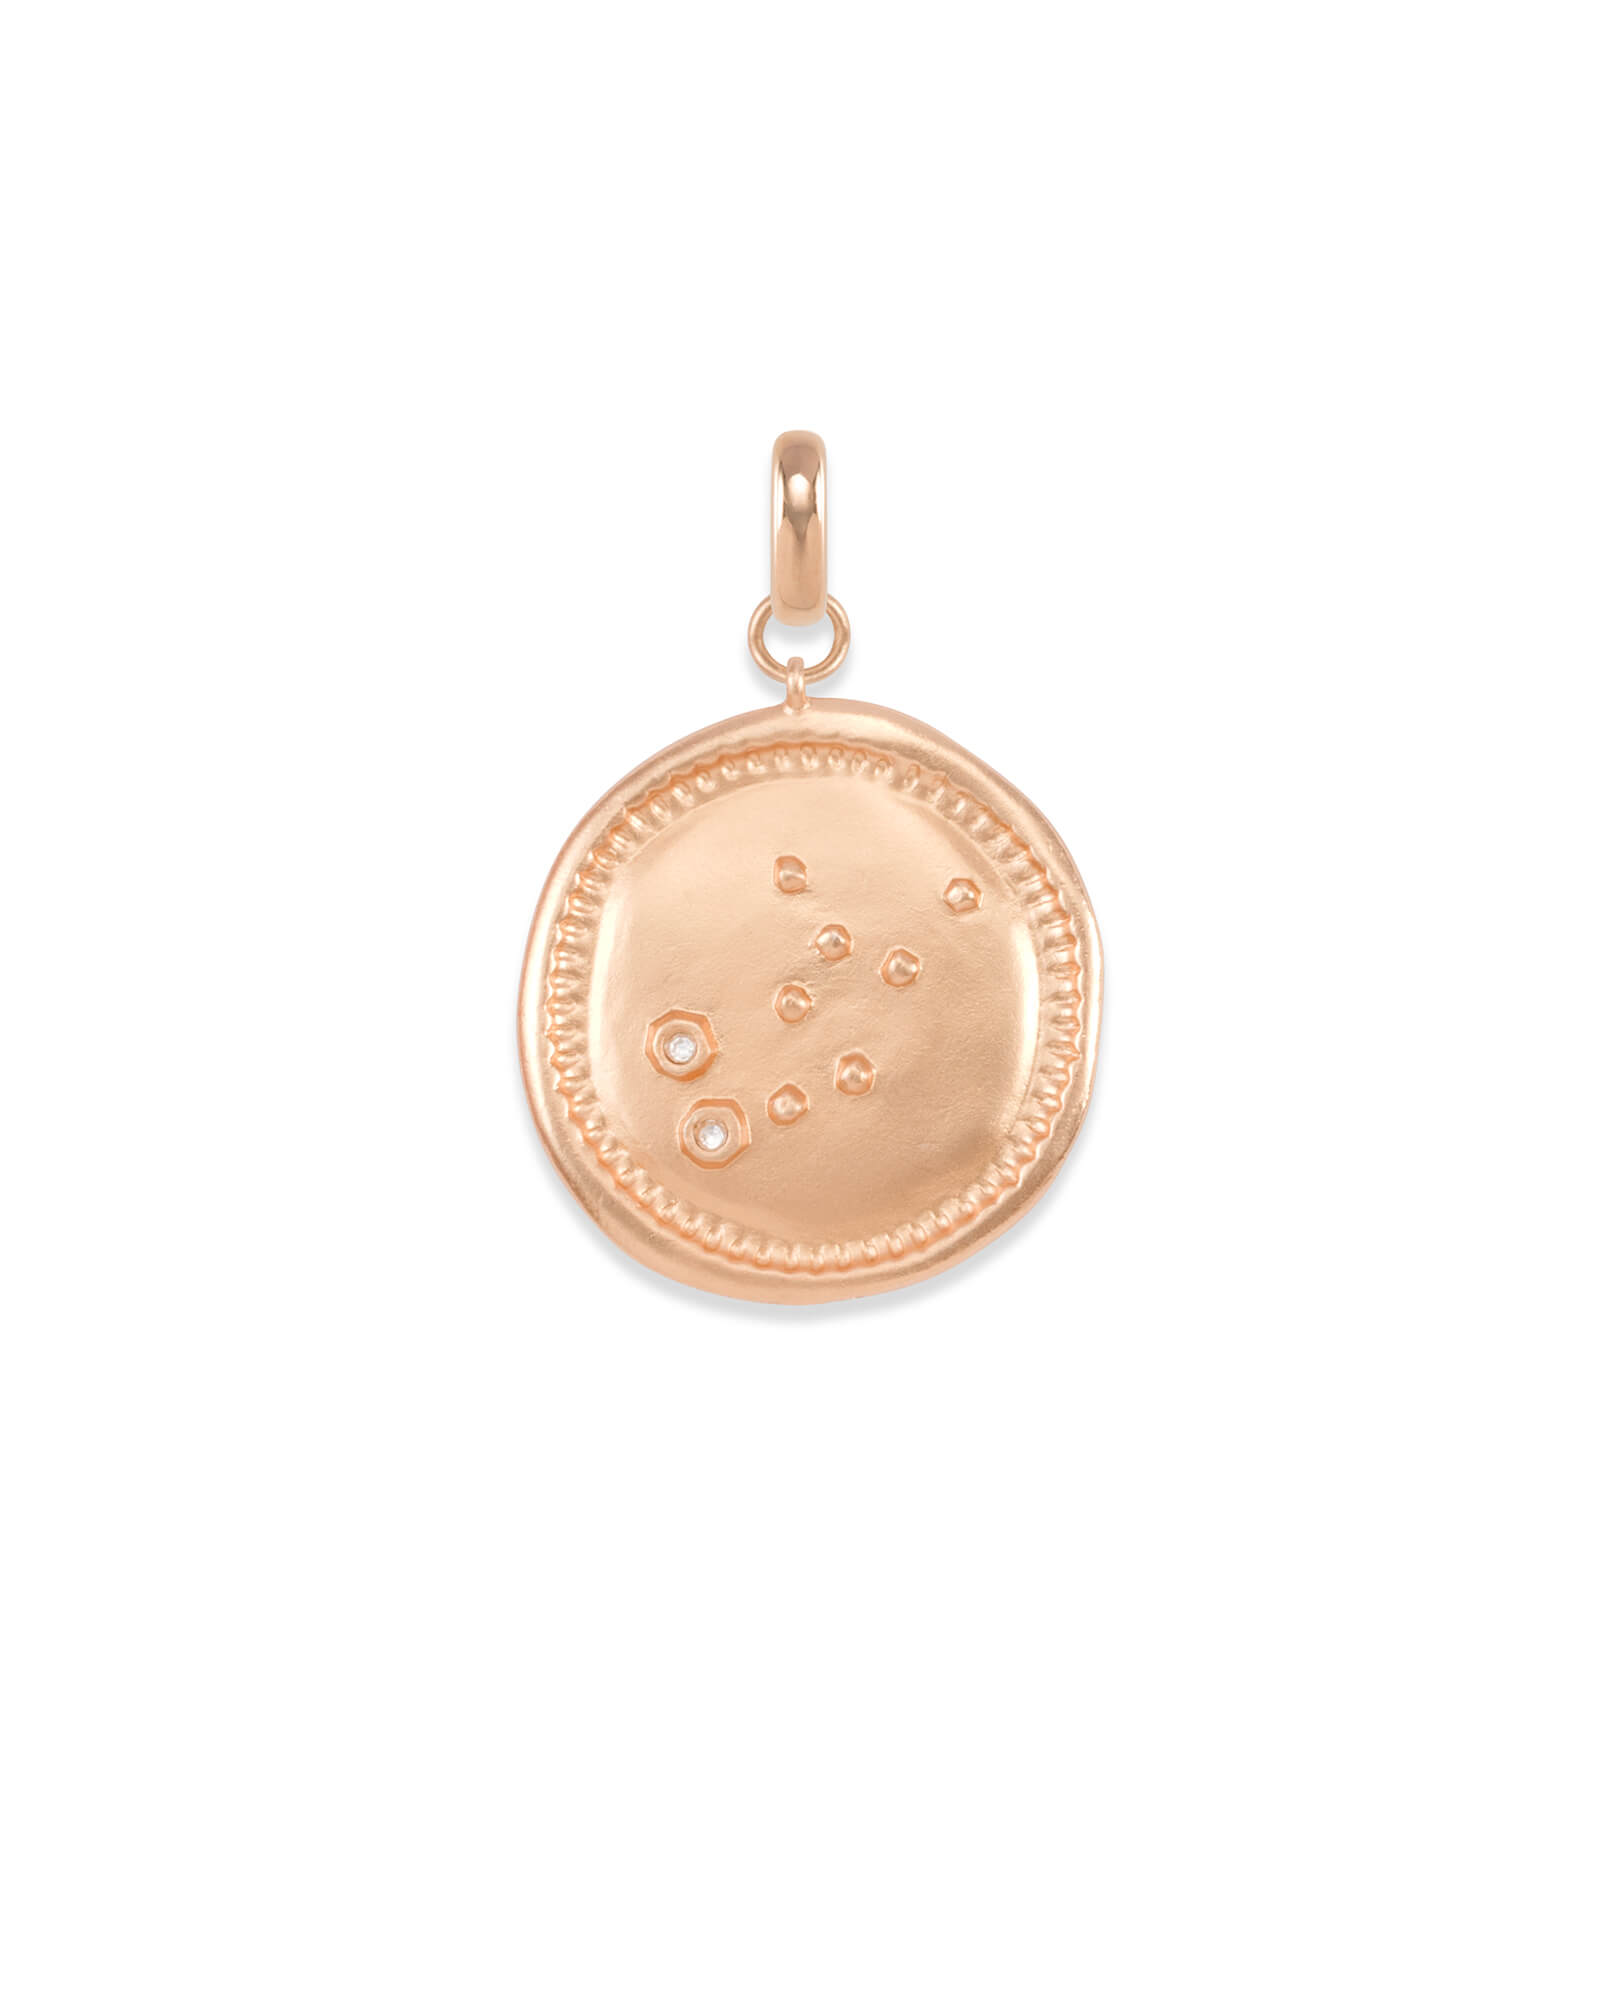 Virgo Coin Charm in Rose Gold